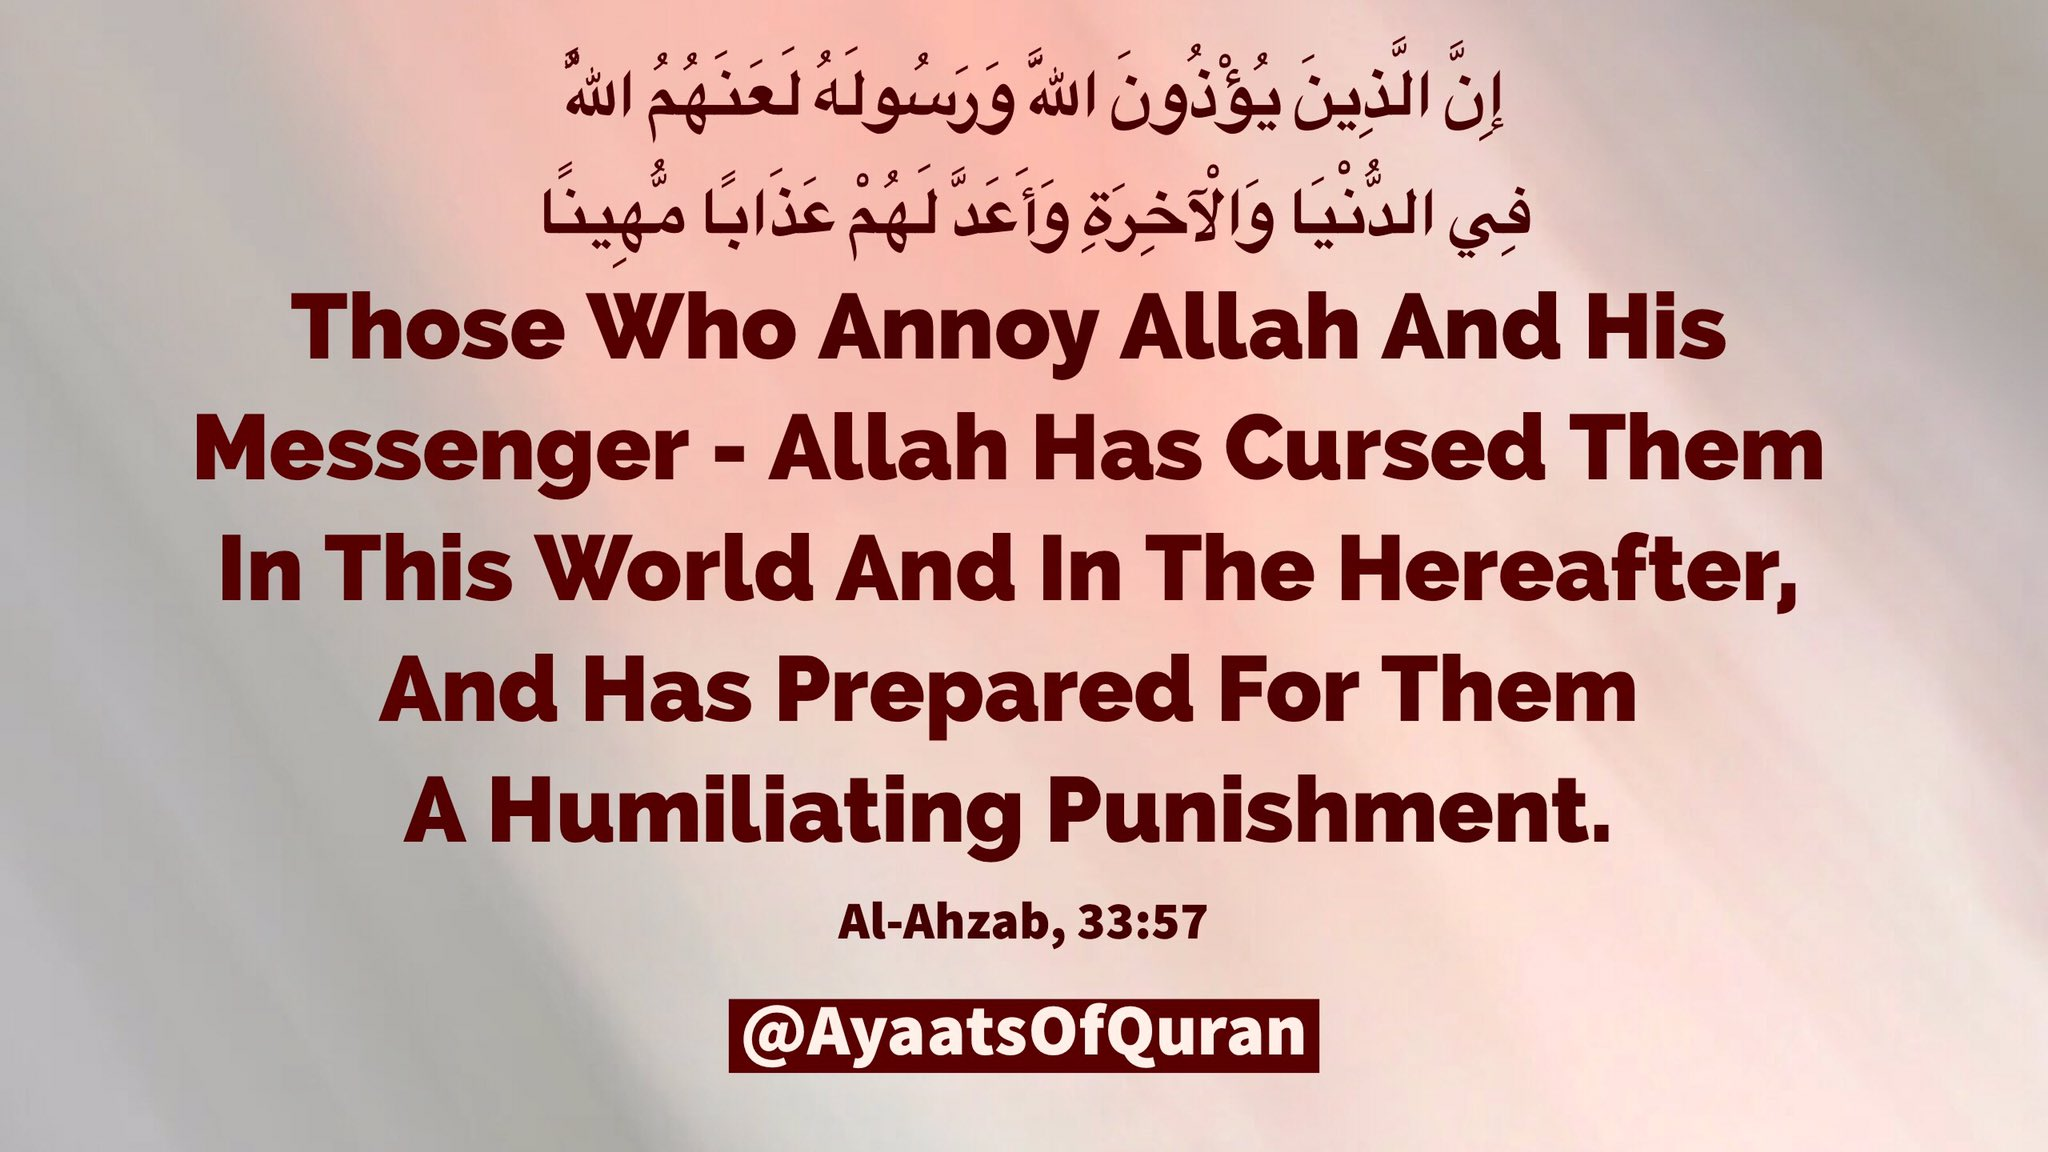 """Guidance From Quran on Twitter: """"Those Who Annoy Allah & His Messenger -  Allah Has Cursed Them In This World & In The Hereafter... #ProphetMuhammad  #TheOppressedFatima… https://t.co/M86qBoPBPy"""""""